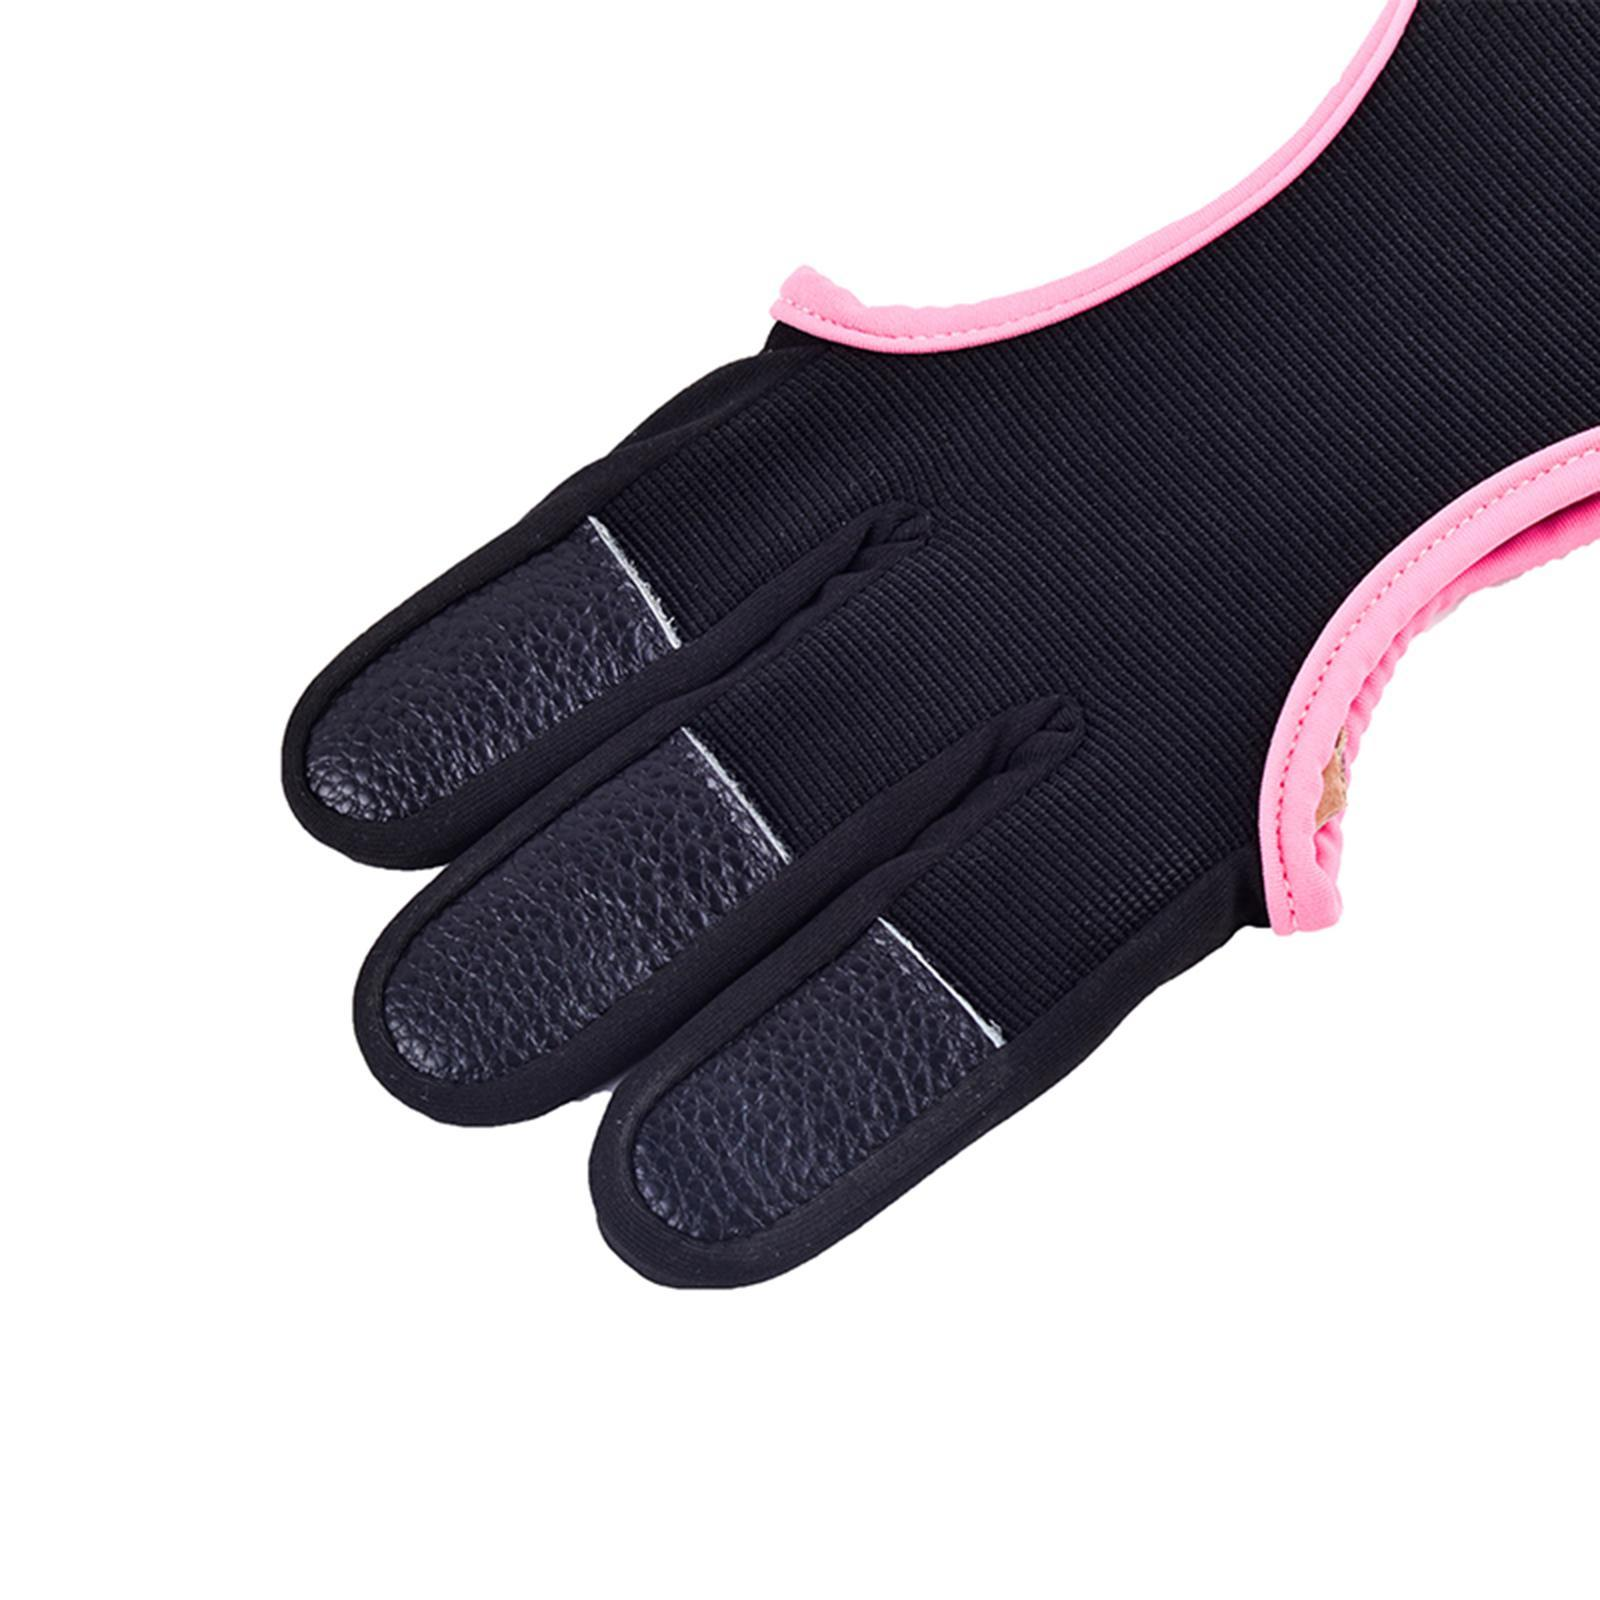 thumbnail 47 - Archery Glove for Recurve & Compound Bow 3 Finger Guard for Women Men Youth